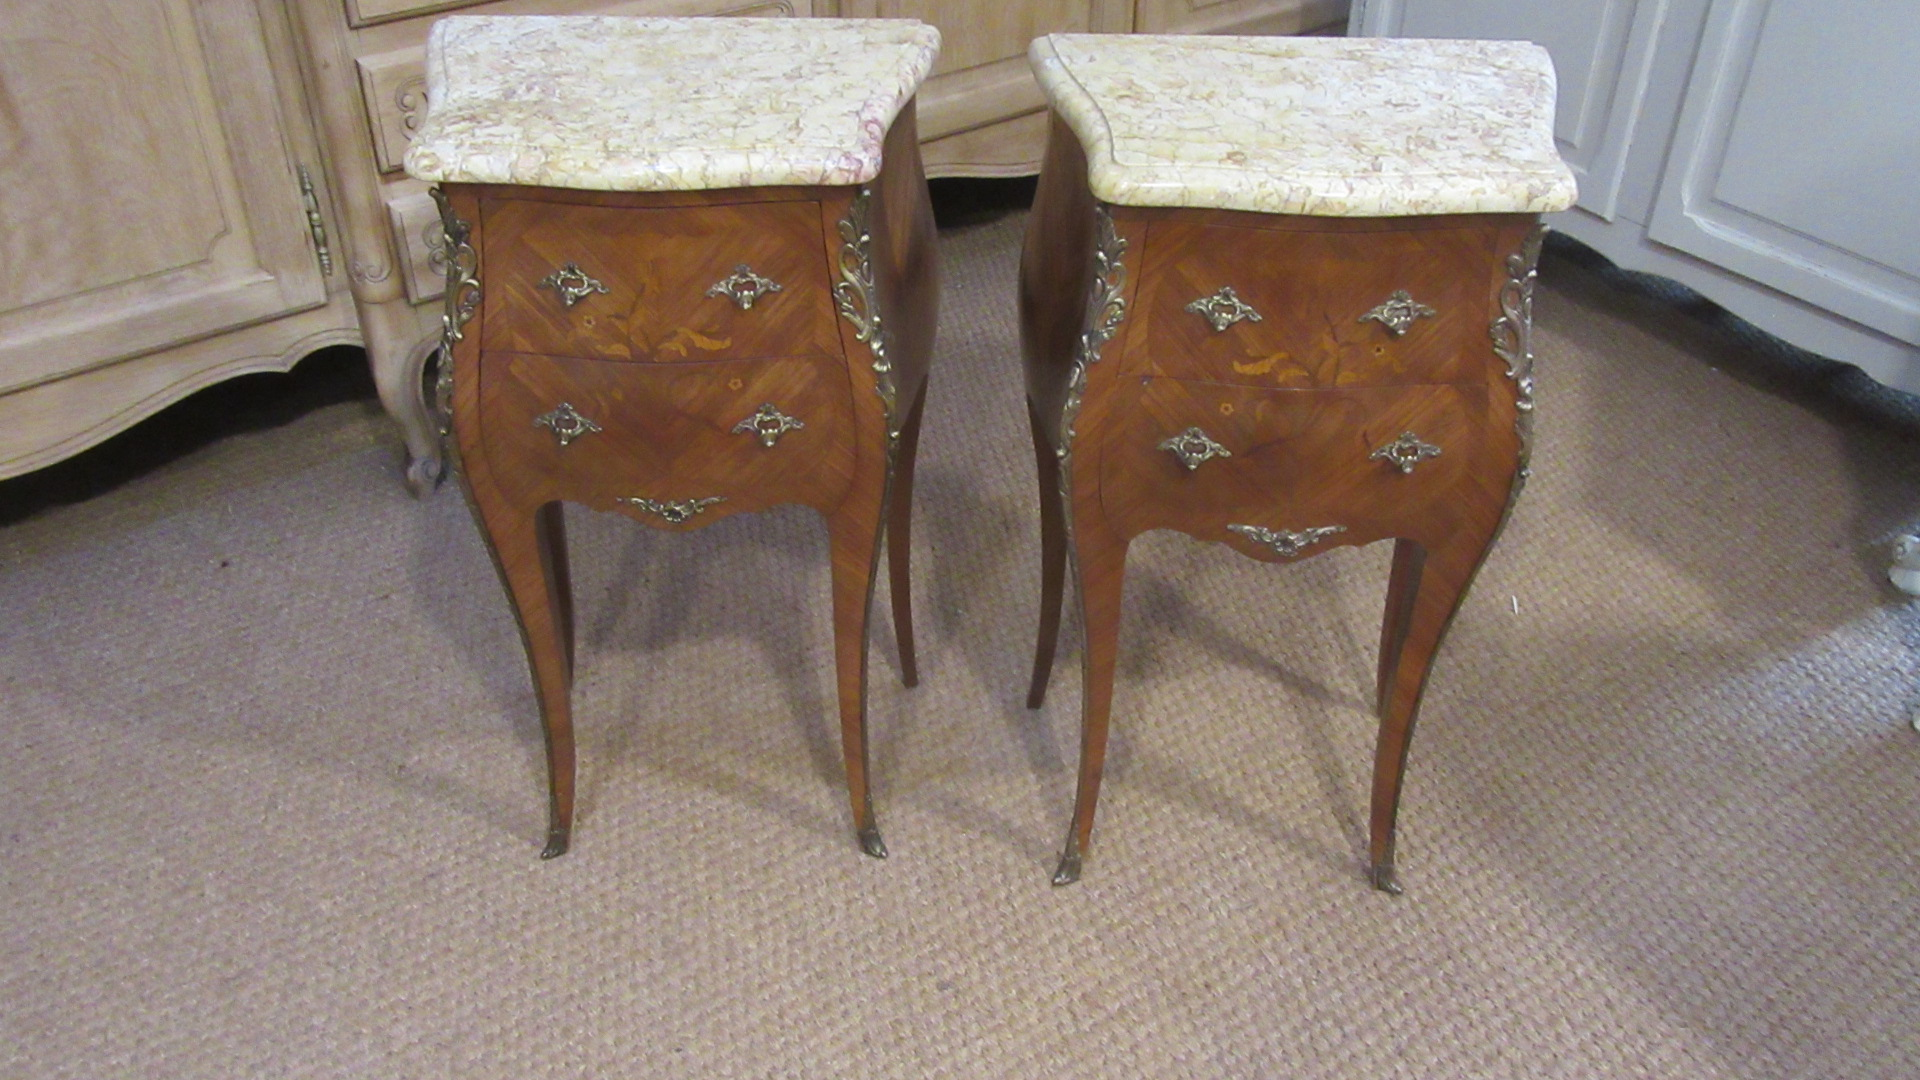 PAIR OF LOUIS XV STYLE INLAID BEDSIDE CHESTS